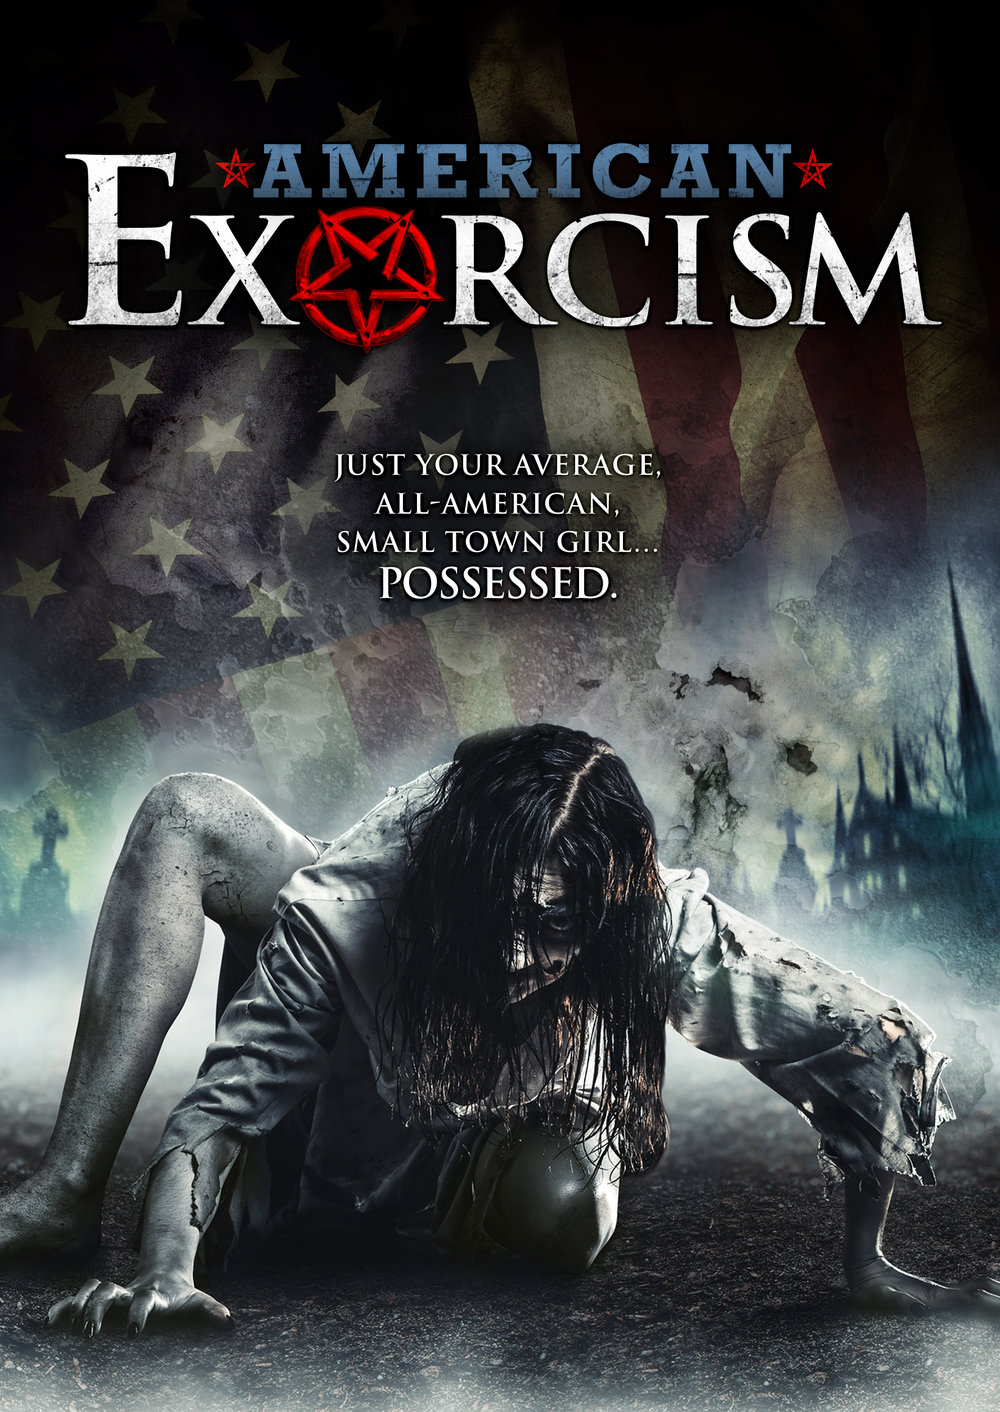 American Exorcism   Damon Richter believed he left the world of demons behind him until an old friend arrives with frightening information about his estranged daughter that only Damon's abandoned otherworldly powers can save.